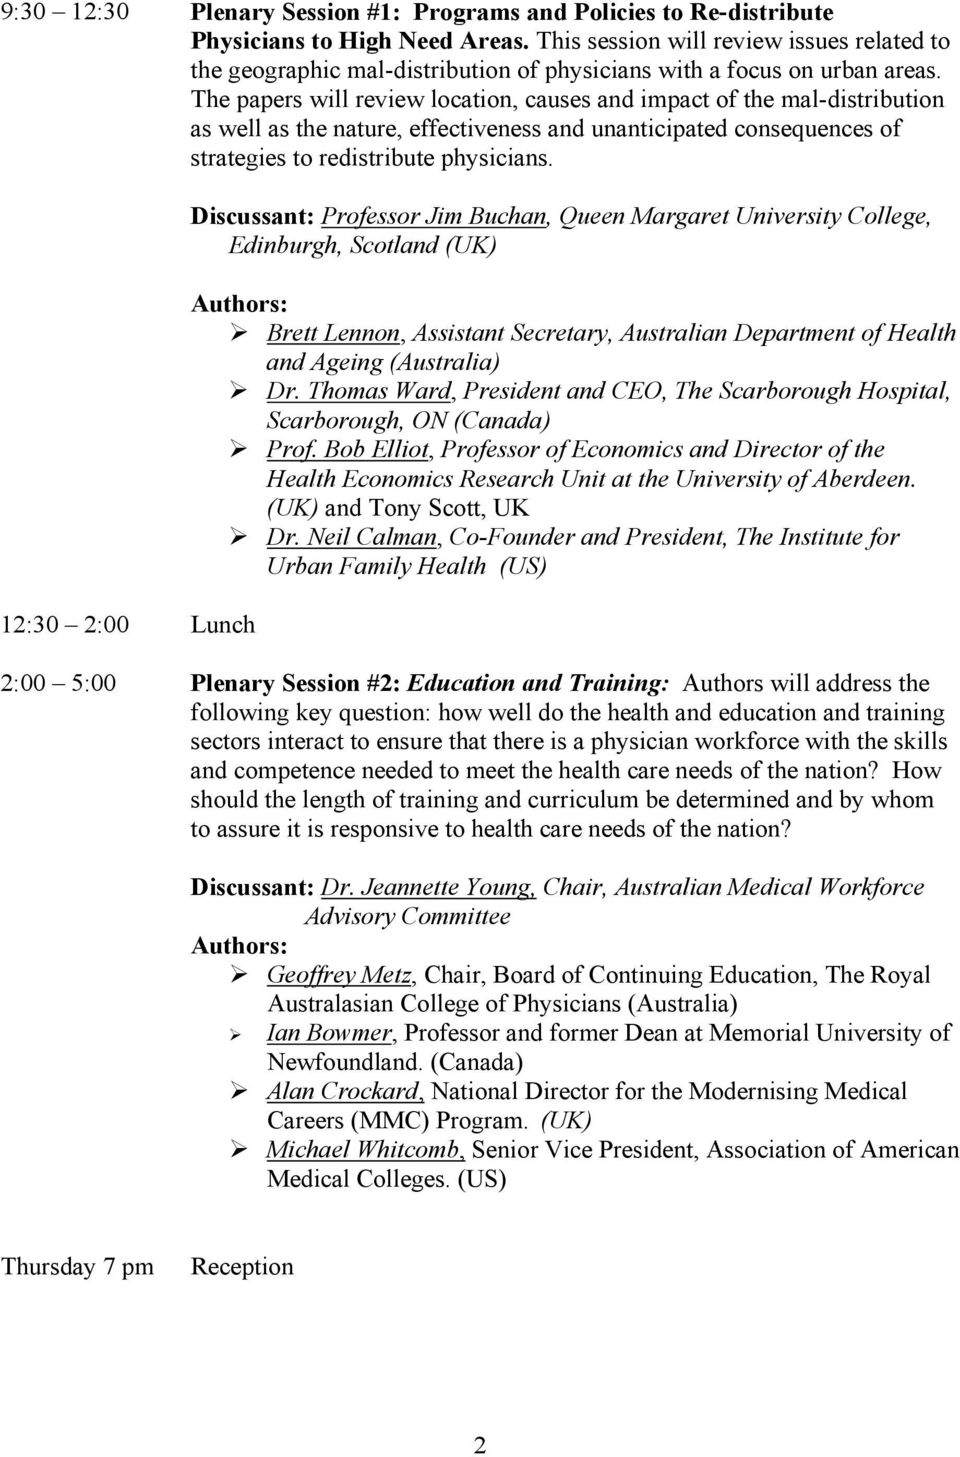 Wednesday, October 6  Pre-Conference Activities  1:30 5:00 Physician